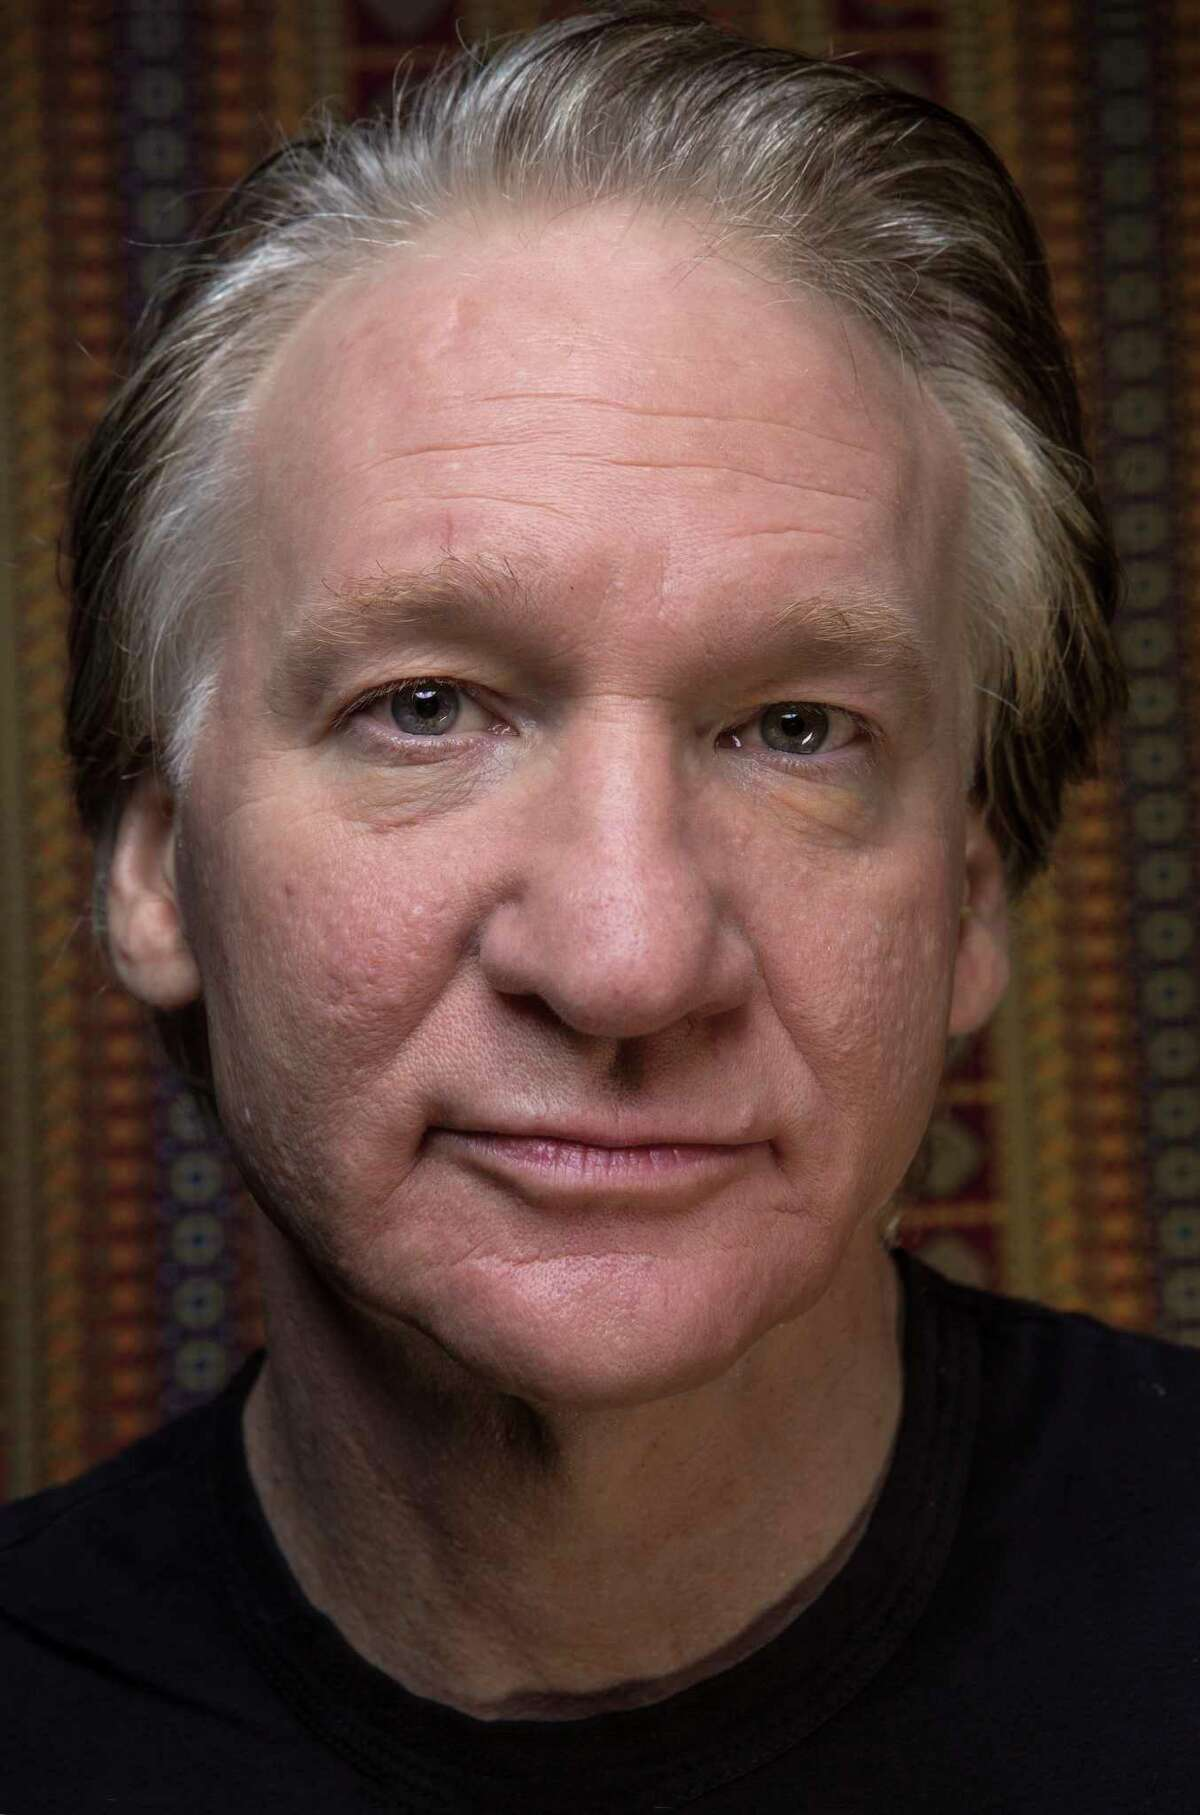 Bill Maher in Beverly Hills, Calif., Jan. 11, 2017. Maher, who has tested the limits of political criticism, is among many in Hollywood who fear that President-elect Donald Trumpa€™s critics will be targeted. (Elizabeth Lippman/The New York Times)-- PART OF A COLLECTION OF STAND-ALONE PHOTOS FOR USE AS DESIRED IN YEAREND STORIES AND RECAPS OF 2017 -- ORG XMIT: NYT209